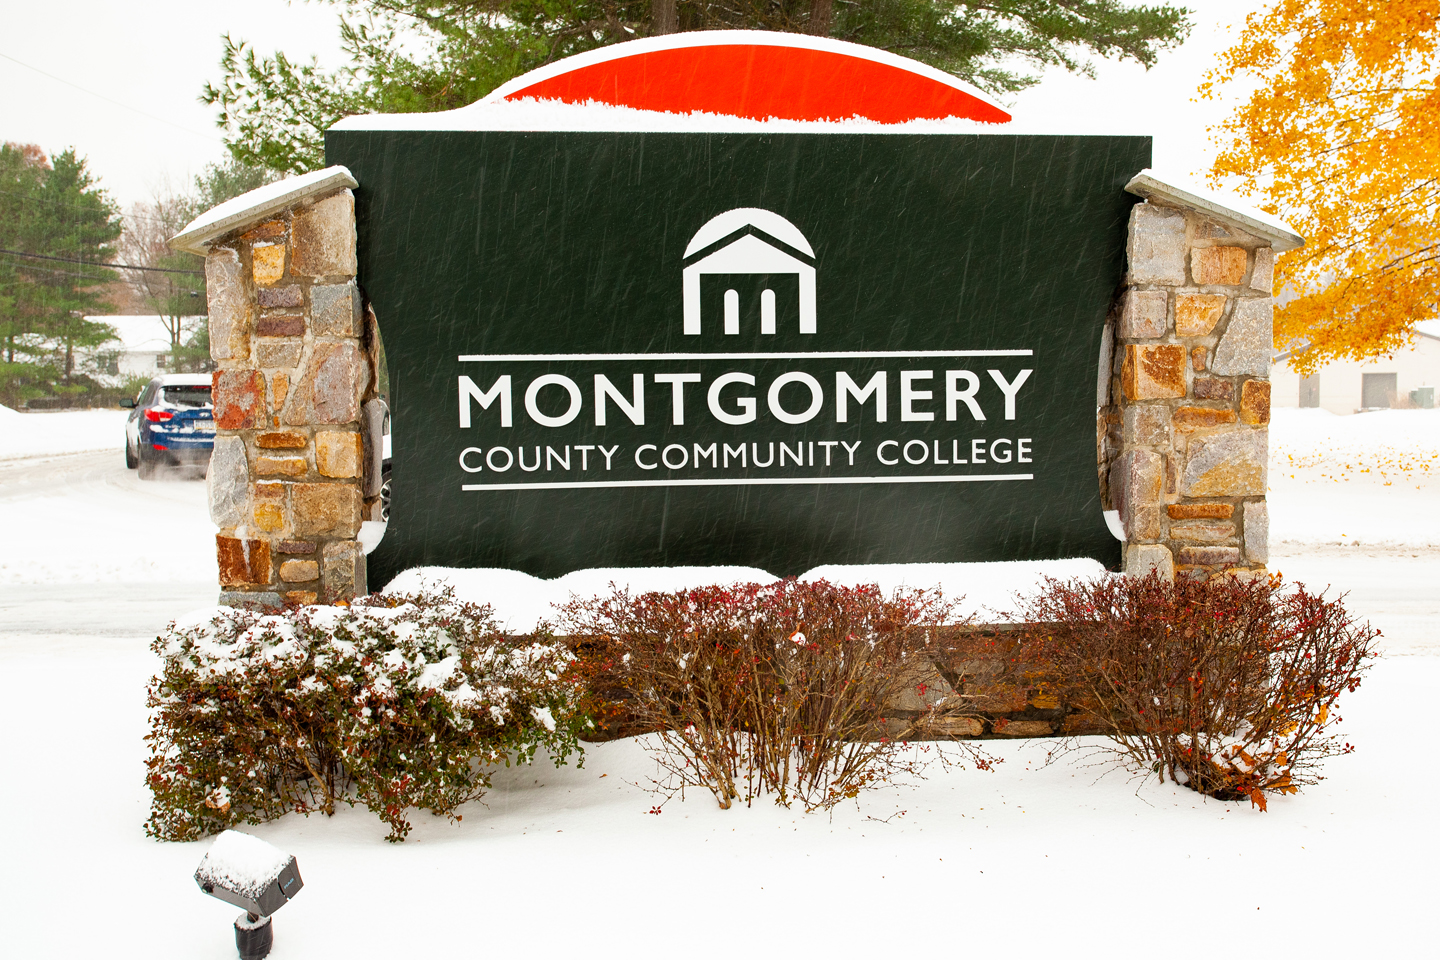 Manufacturing Technician course being offered through Montgomery County Community College's Workforce Development